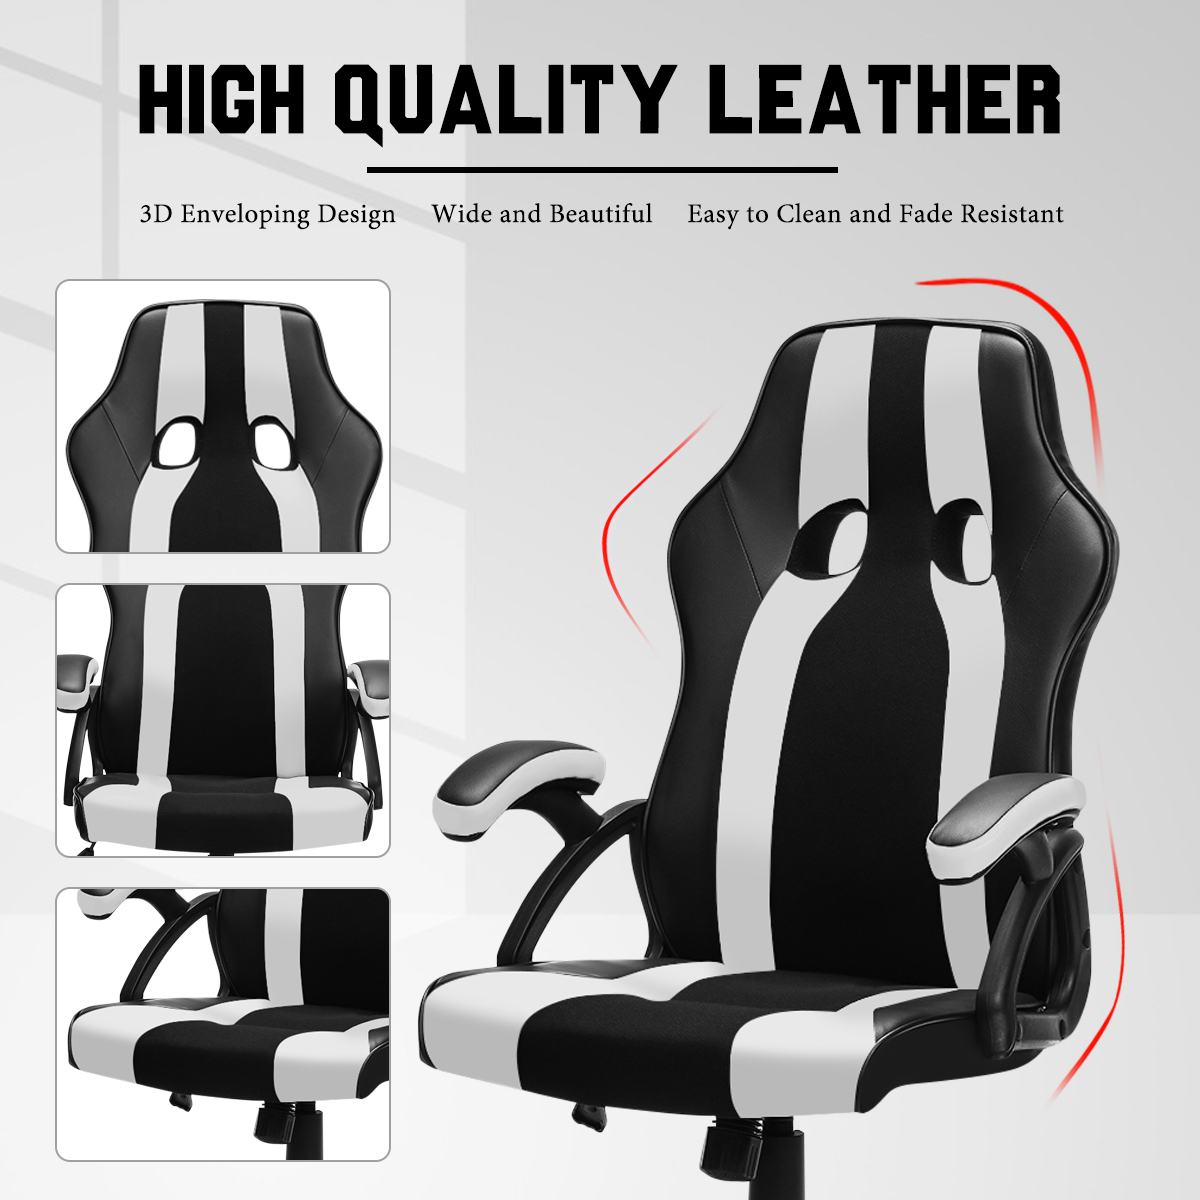 H9bb5eaa2a37344efa92c526738d5212eF - Gaming Office Chairs Executive Computer Chair Desk Chair Comfortable Seating Adjustable Swivel Racing Armchair Office Furniture